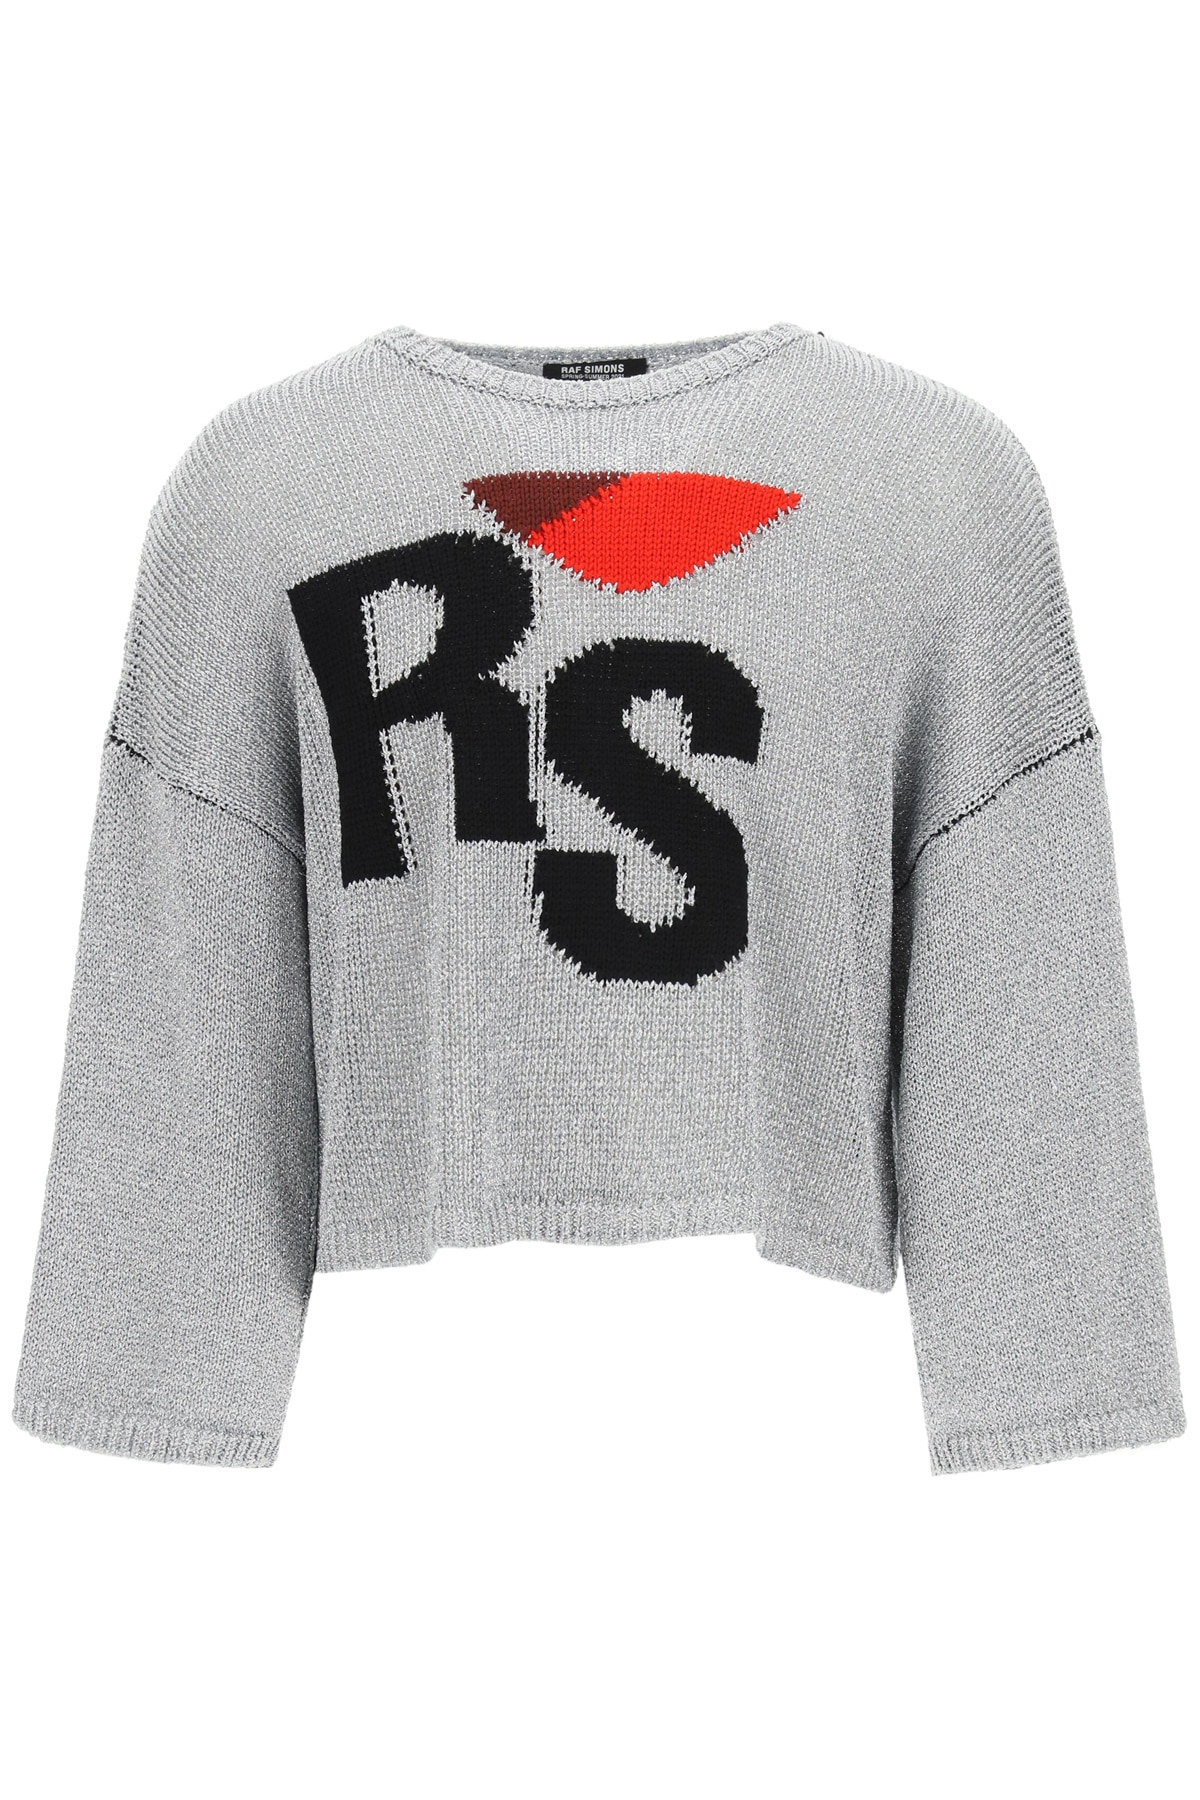 RAF SIMONS OVERSIZED SWEATER RS EMBROIDERY XS Silver, Black, Red Wool